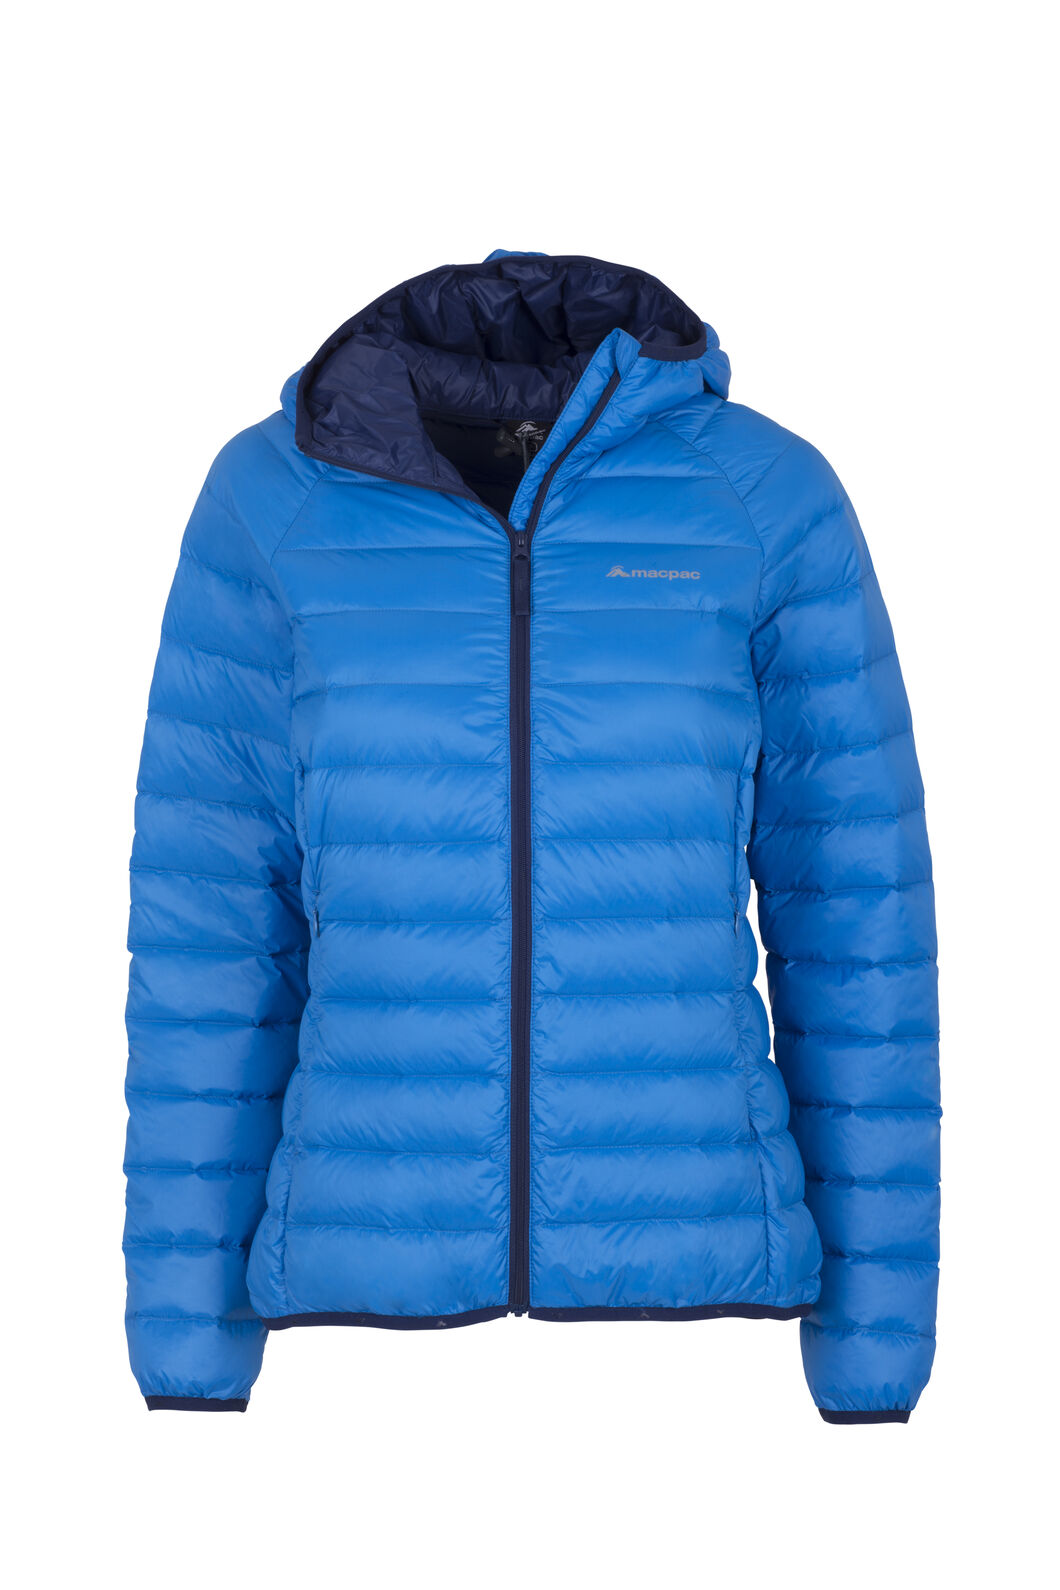 Macpac Uber Light Hooded Jacket - Women's, Directoire, hi-res